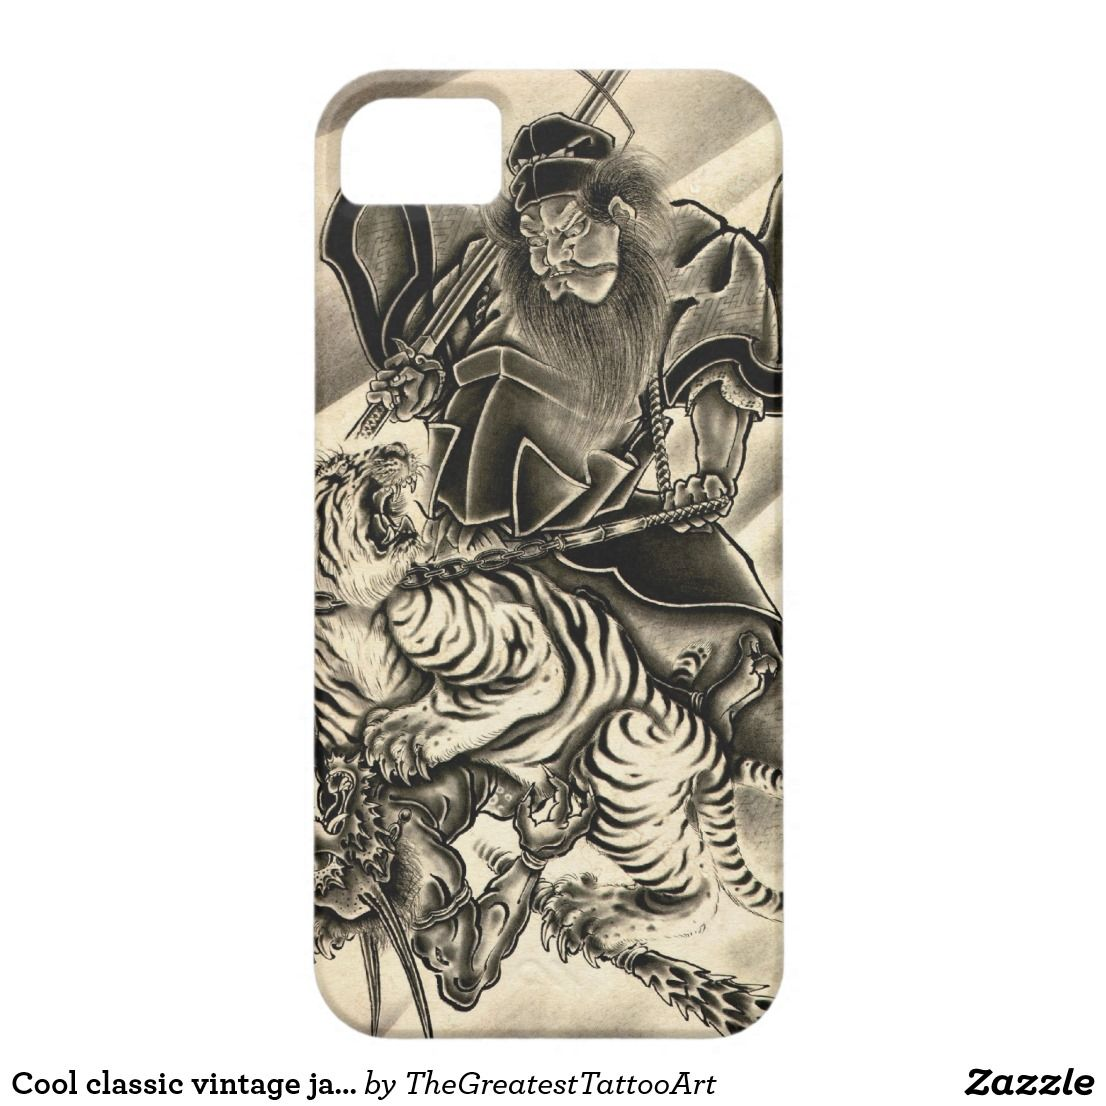 samurai tiger tattoo demon samurai tiger iphone tiger. Black Bedroom Furniture Sets. Home Design Ideas